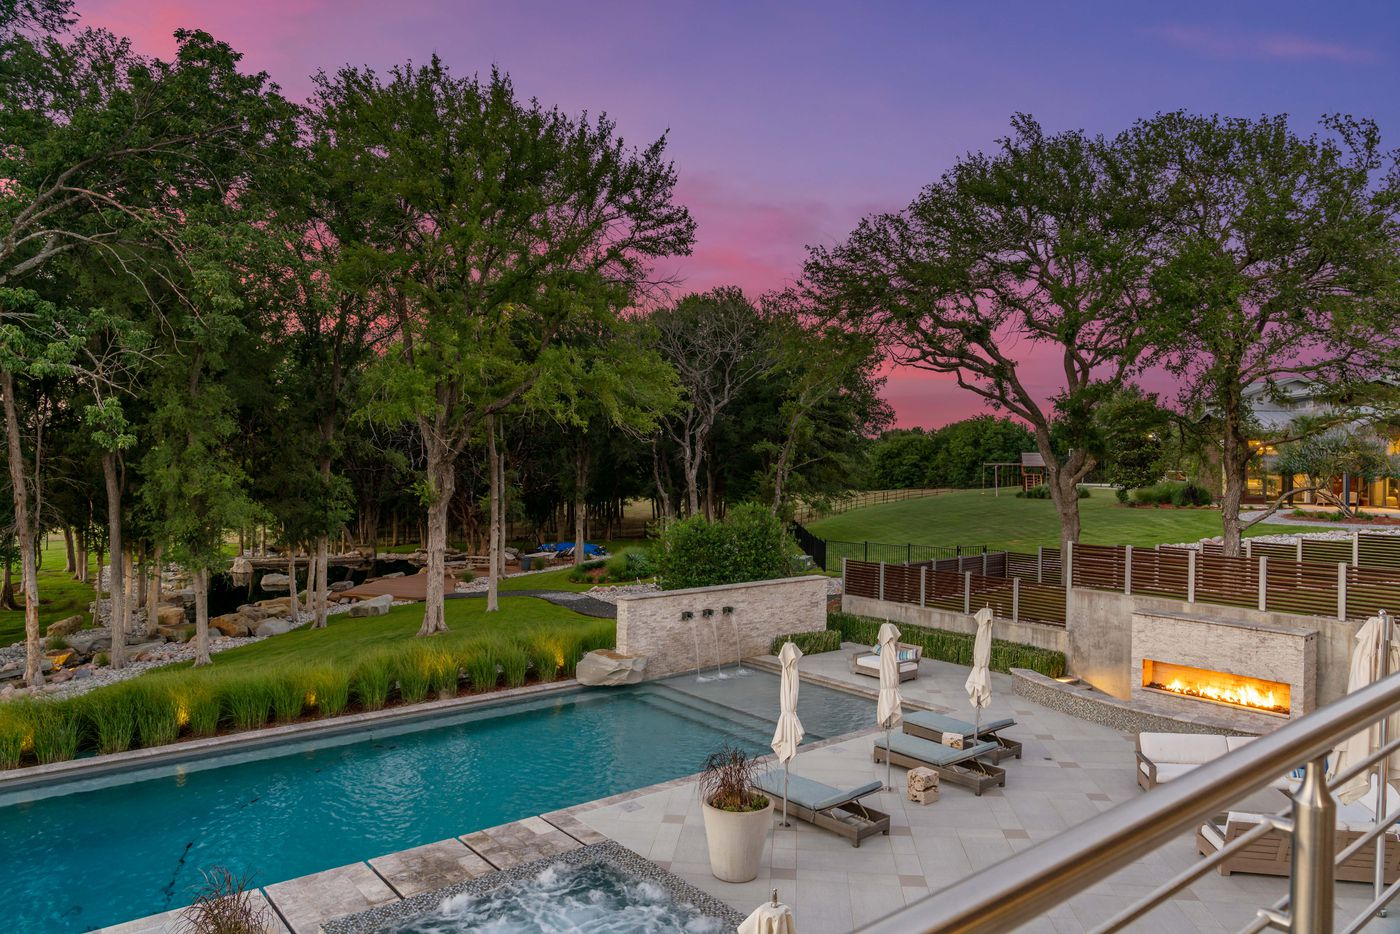 Take a look at the home at 1355 Wendy Lane in Lucas, TX.